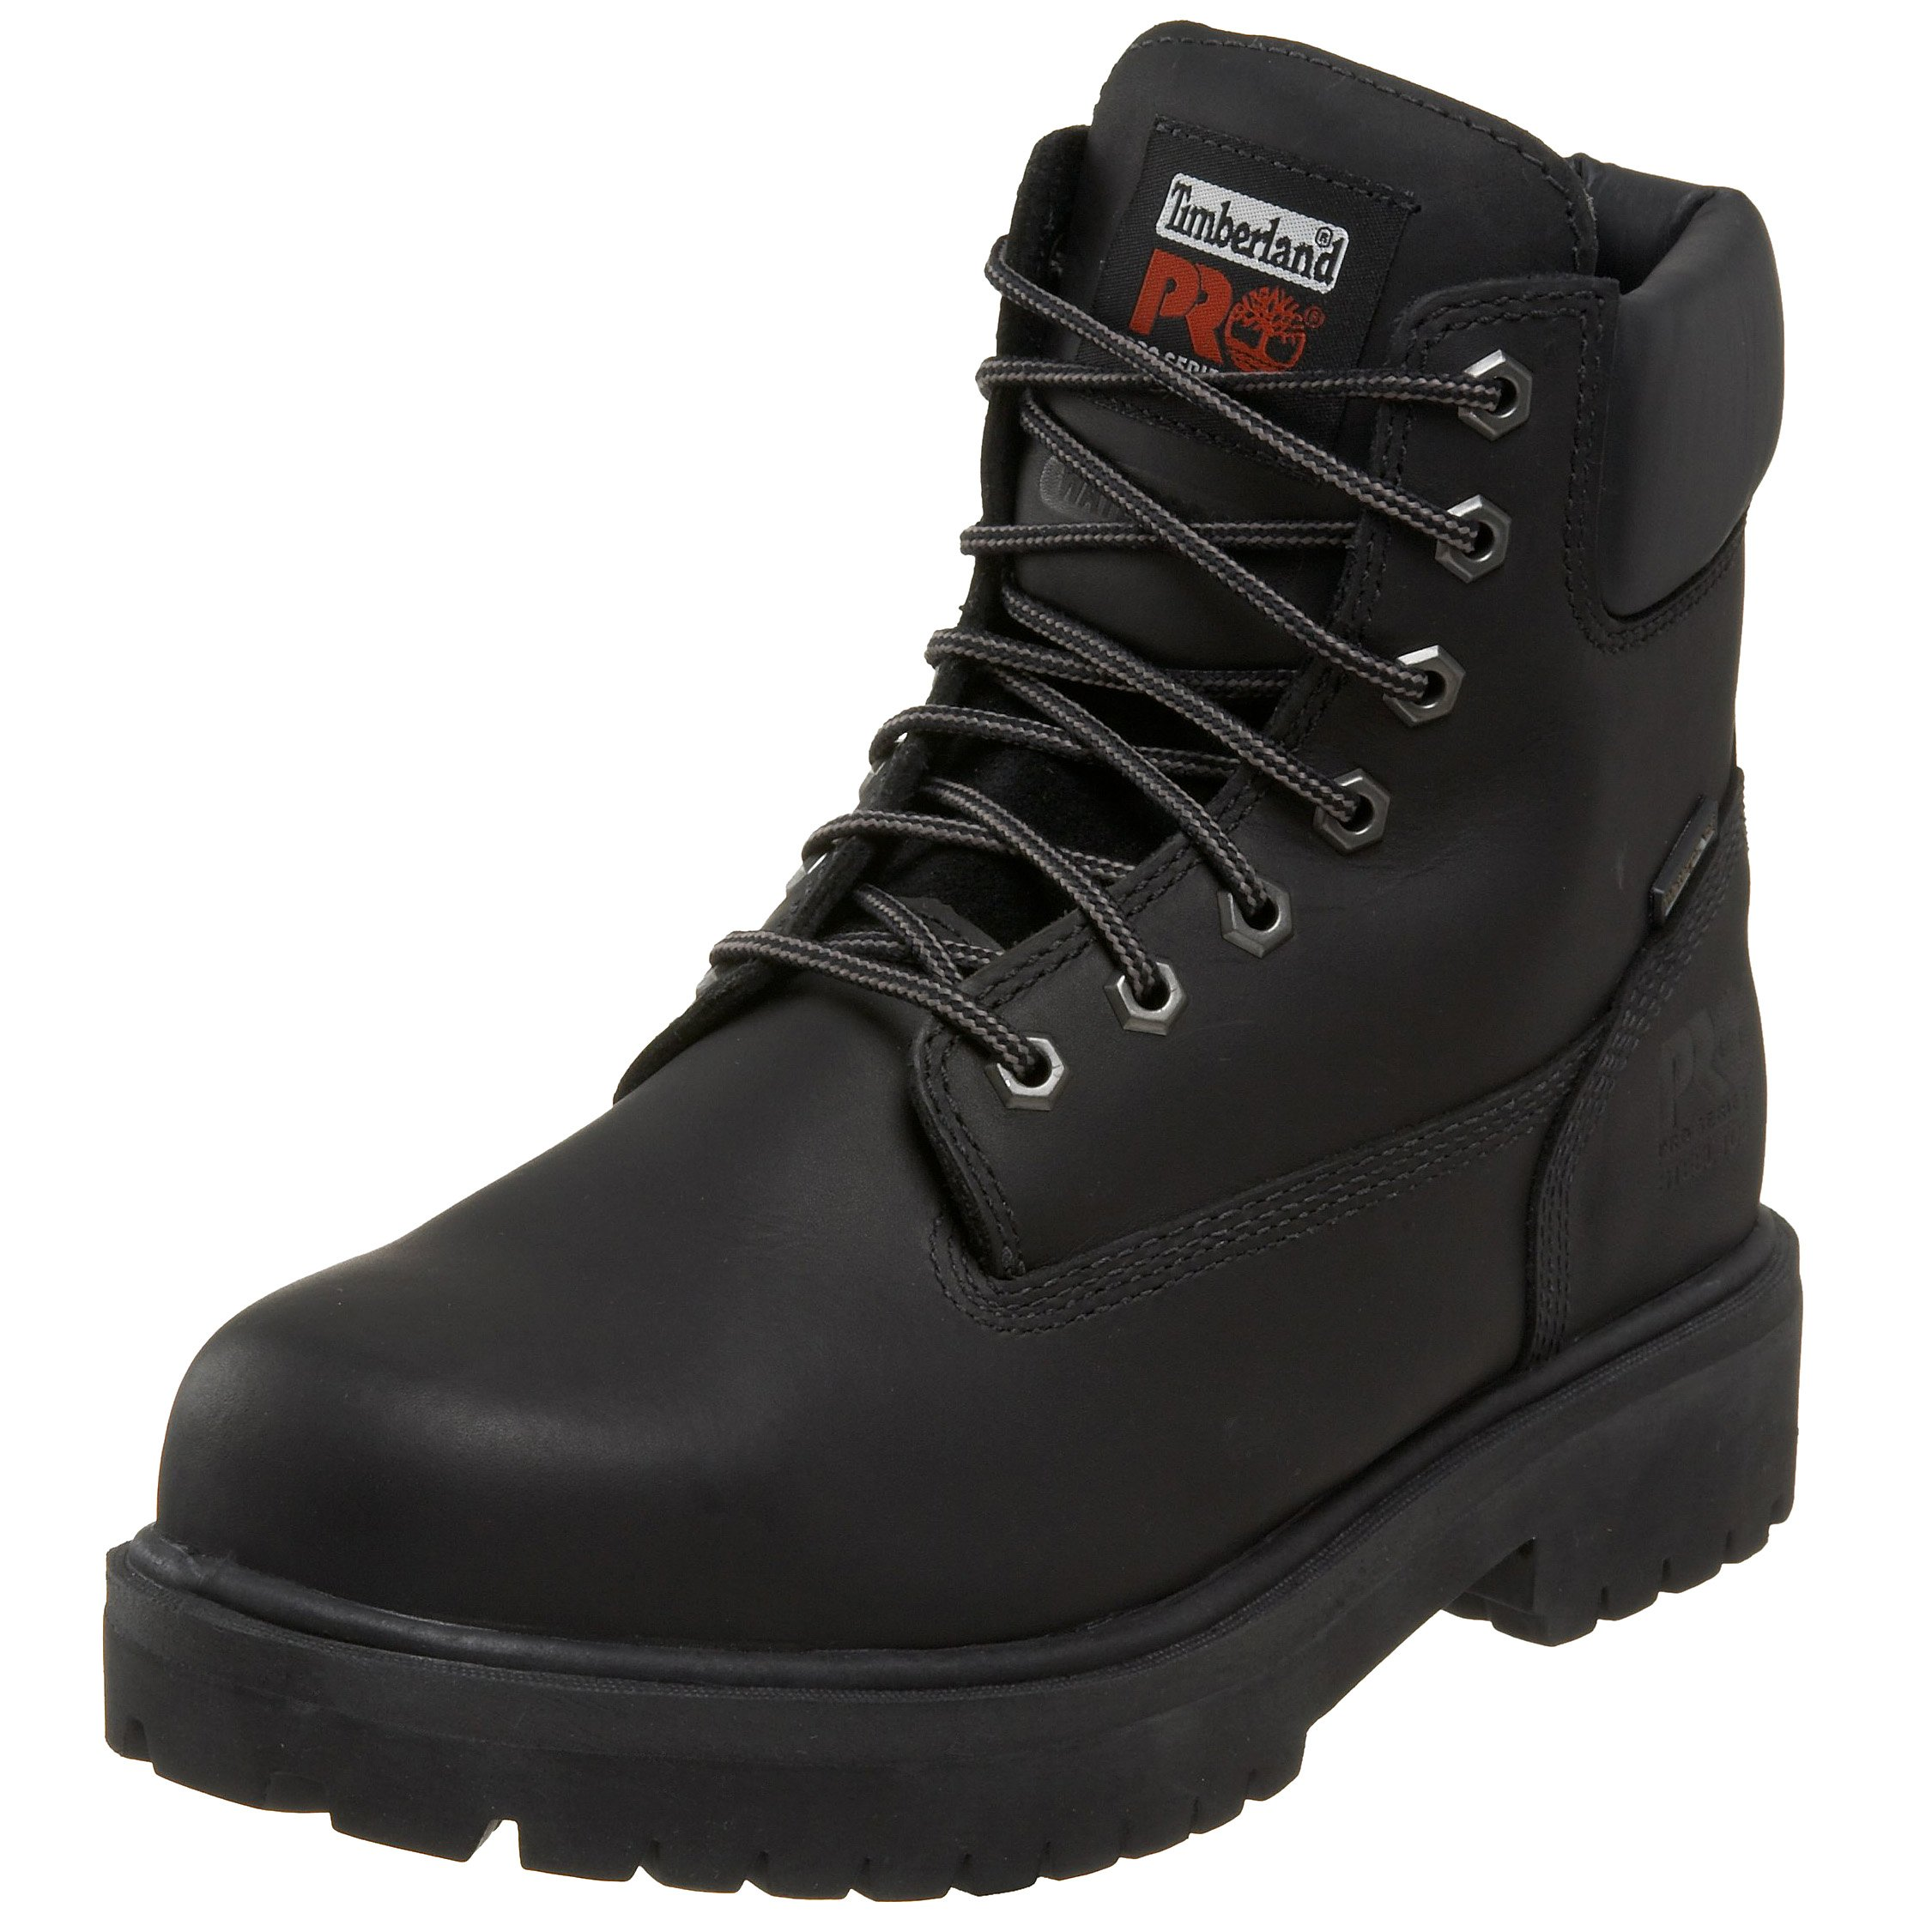 Timberland PRO Men's 26038 Direct Attach 6'' Steel Toe Boot,Black,12 M by Timberland PRO